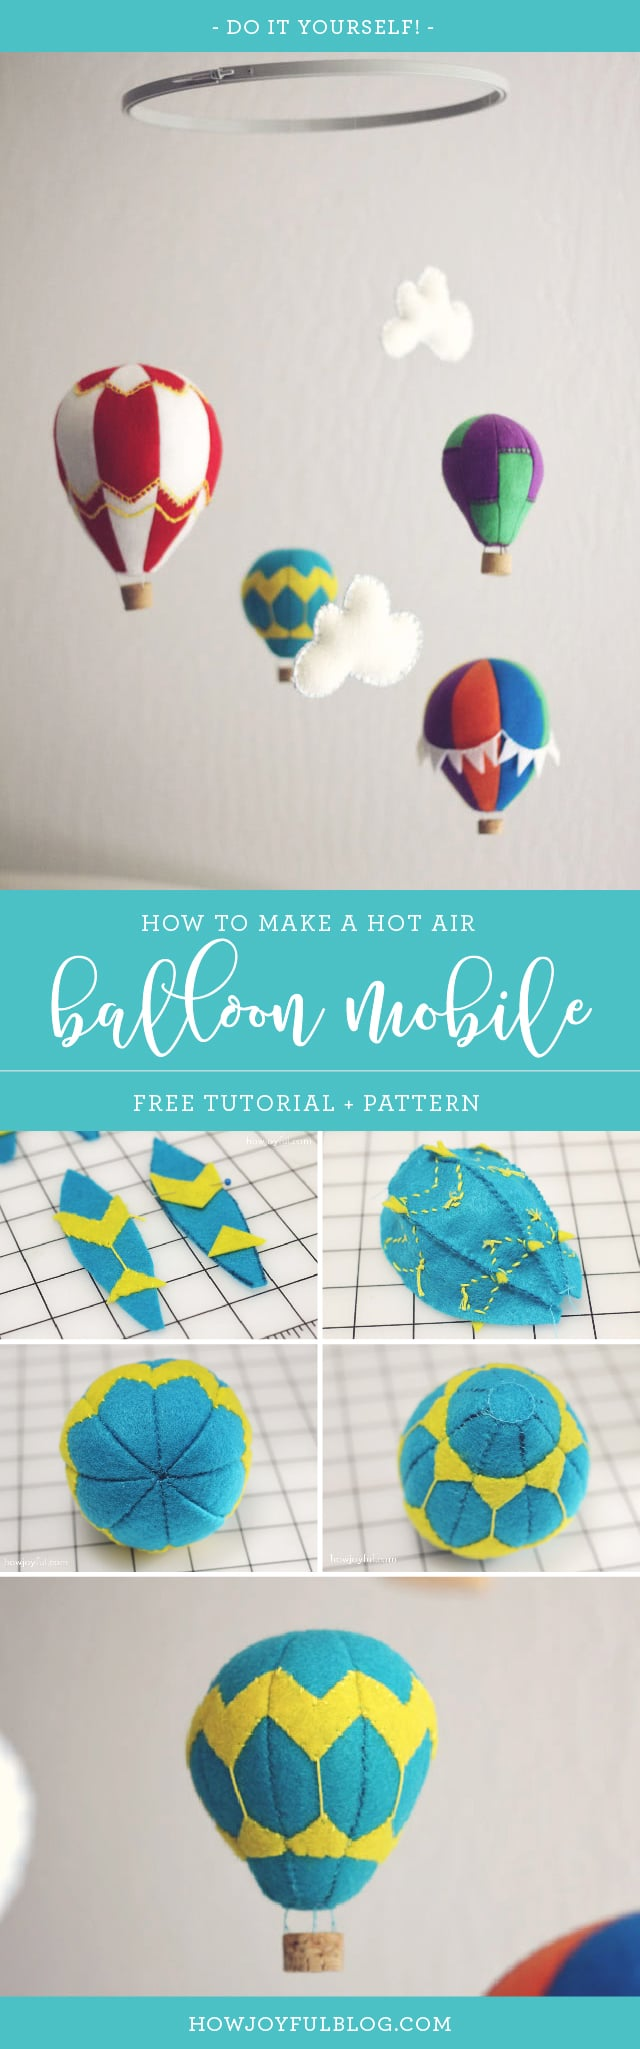 How to make a hot air balloon mobile with felt - tutorial and pattern - Nursery by Joy Kelley of 